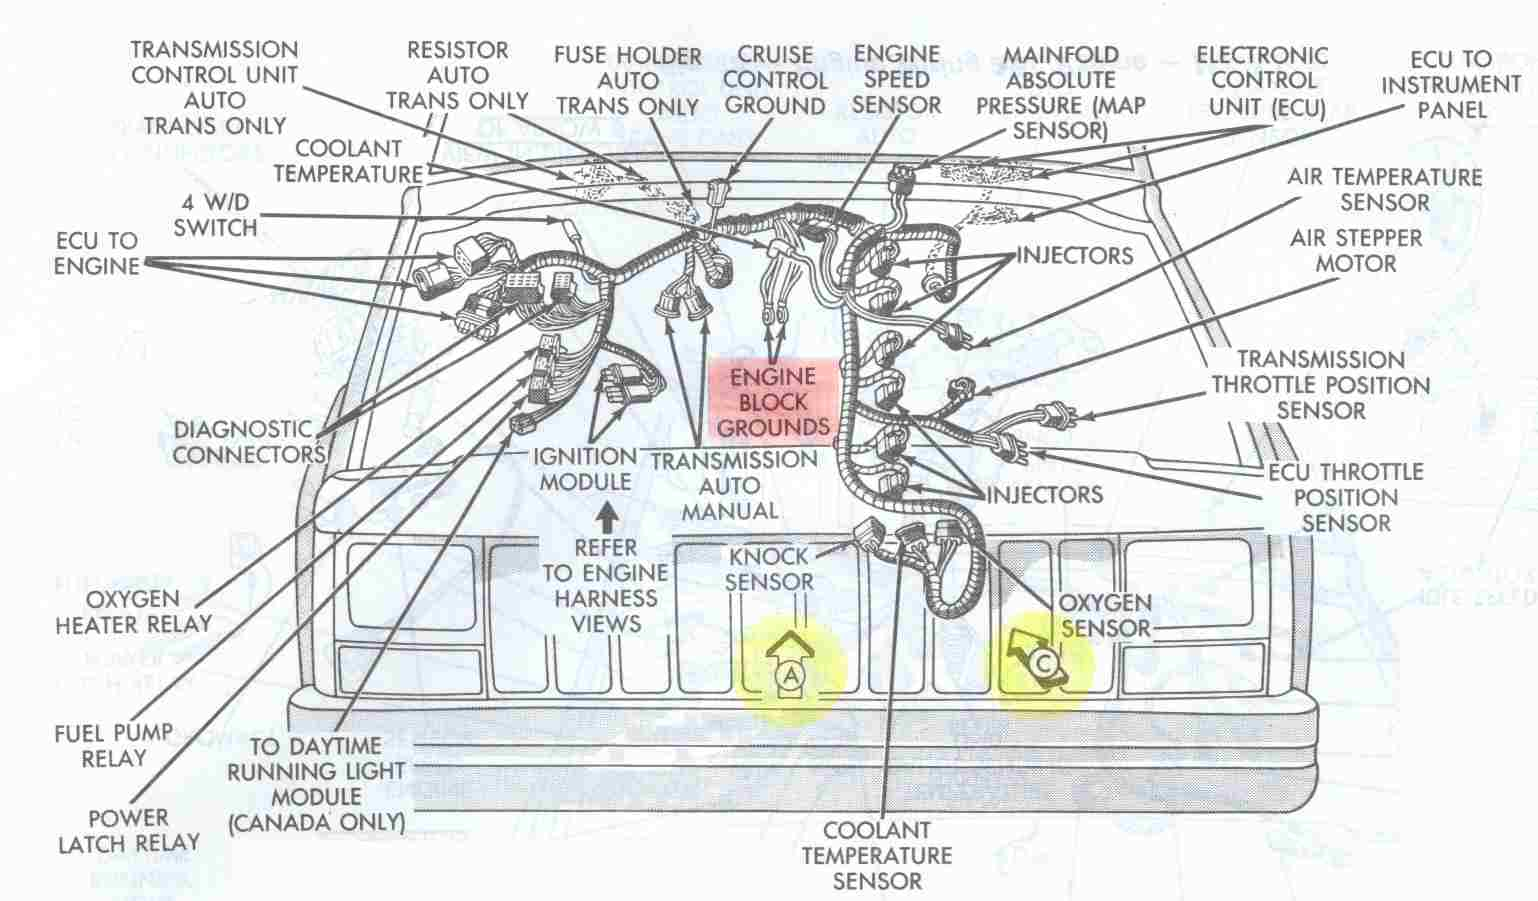 Electrical_Engine_Ground_Points_Overview jeep cherokee electrical diagnosing erratic behavior of engine wiring diagram for 1991 jeep wrangler 4.0 at reclaimingppi.co